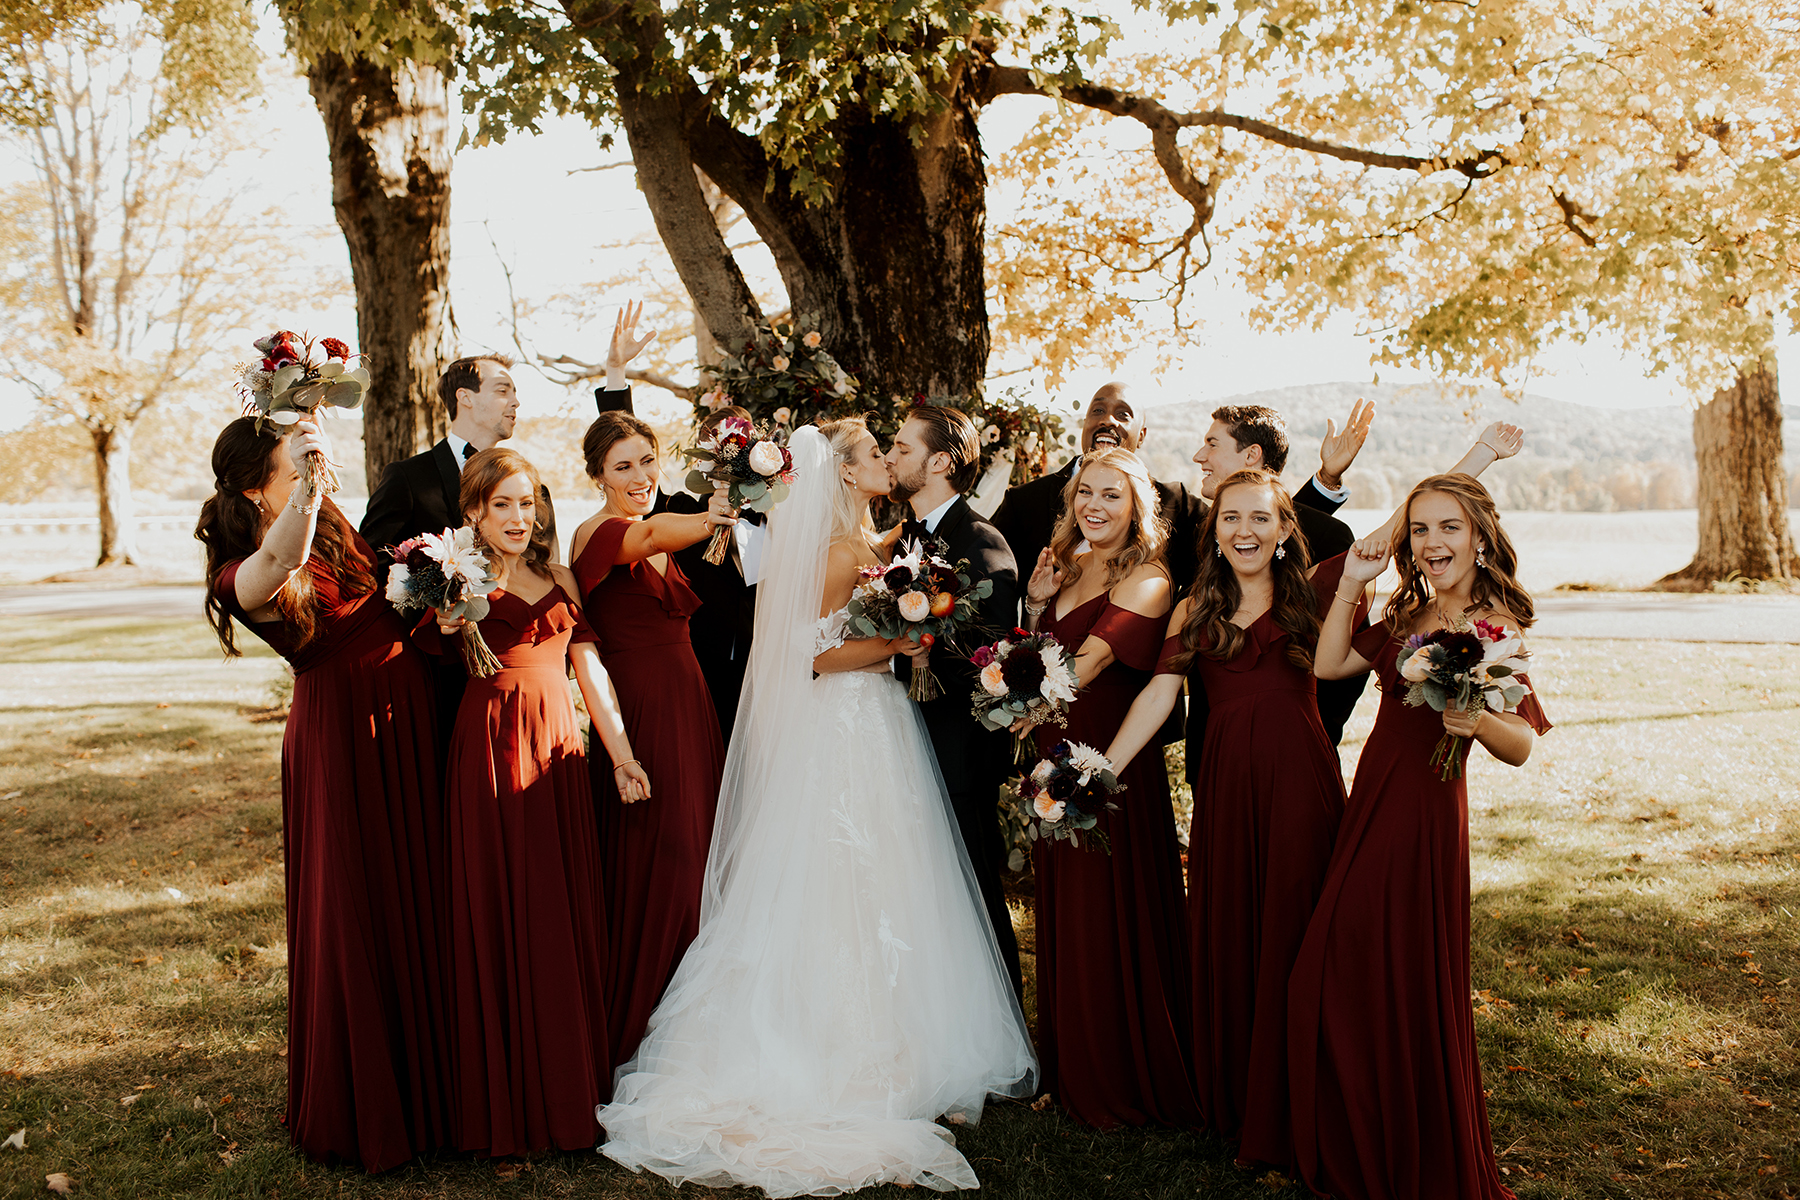 Katies Bliss Wedding Bridal Party Photos